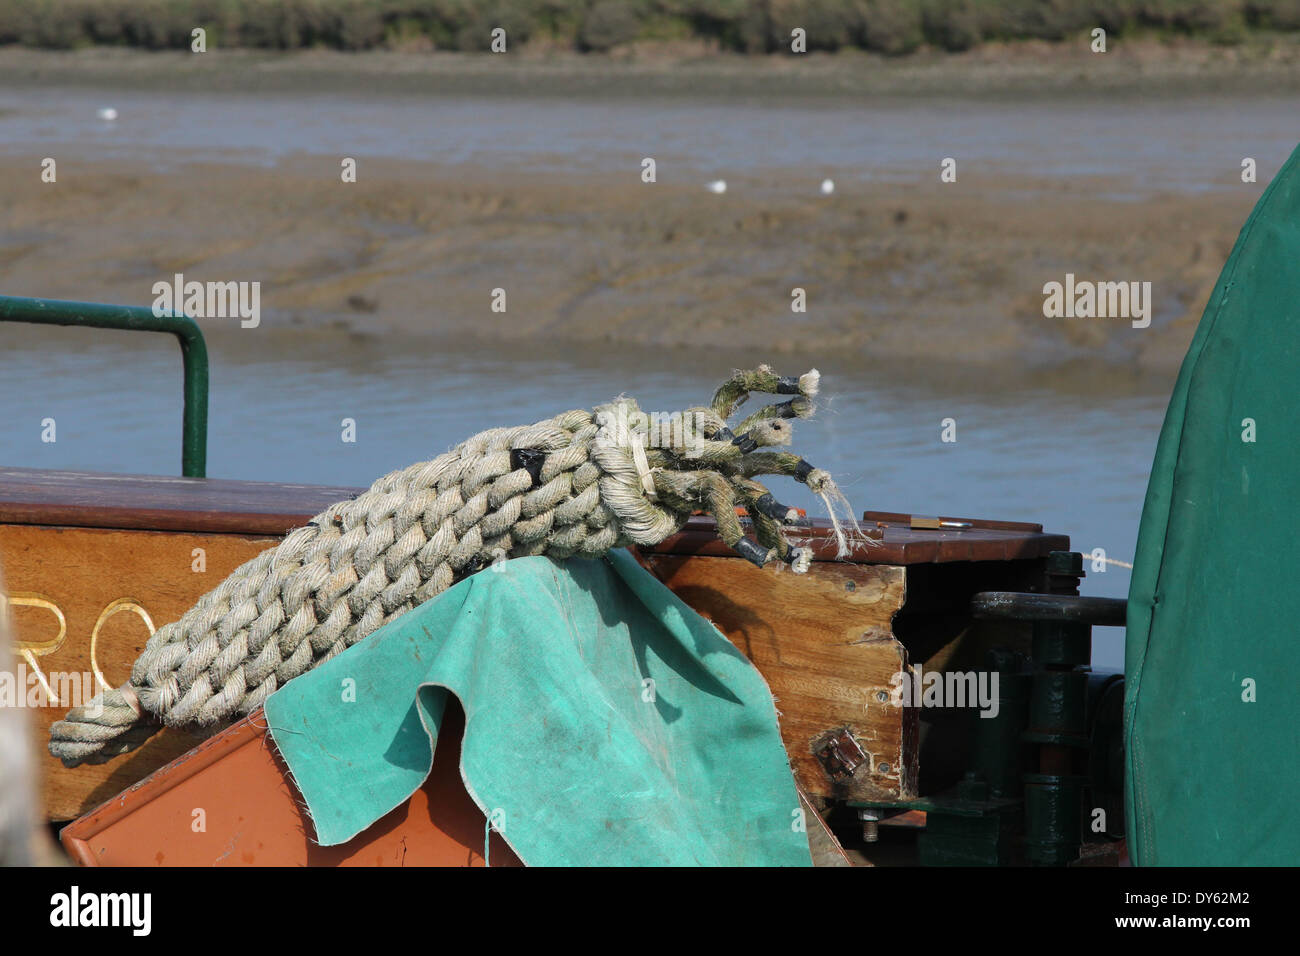 Close up of rope on a boat. - Stock Image